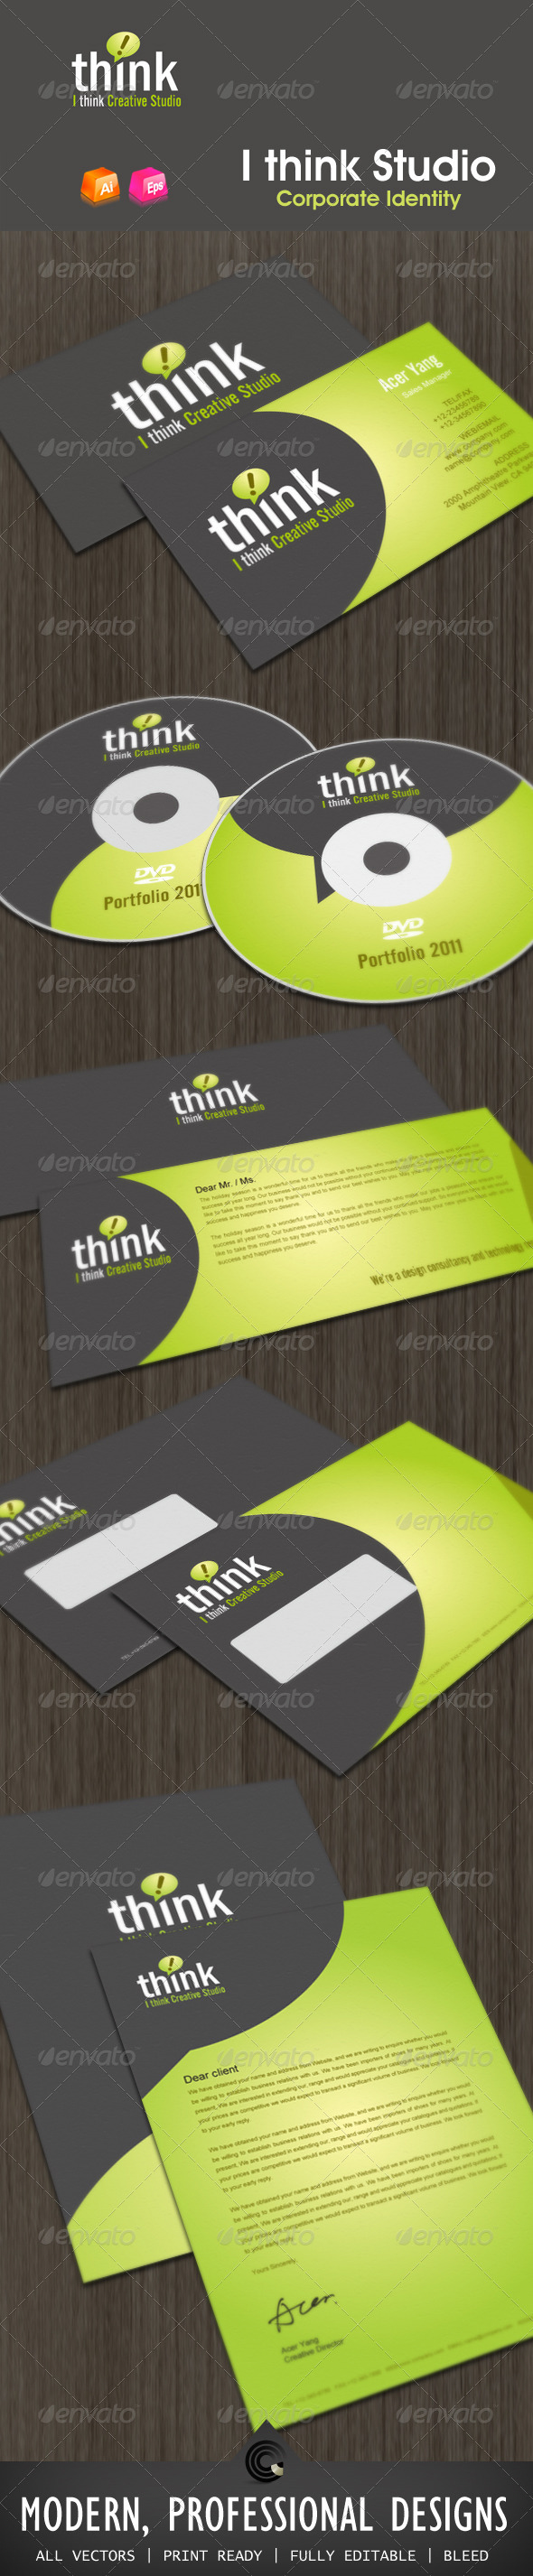 GraphicRiver Ithink Studio Corporate Identity 484318